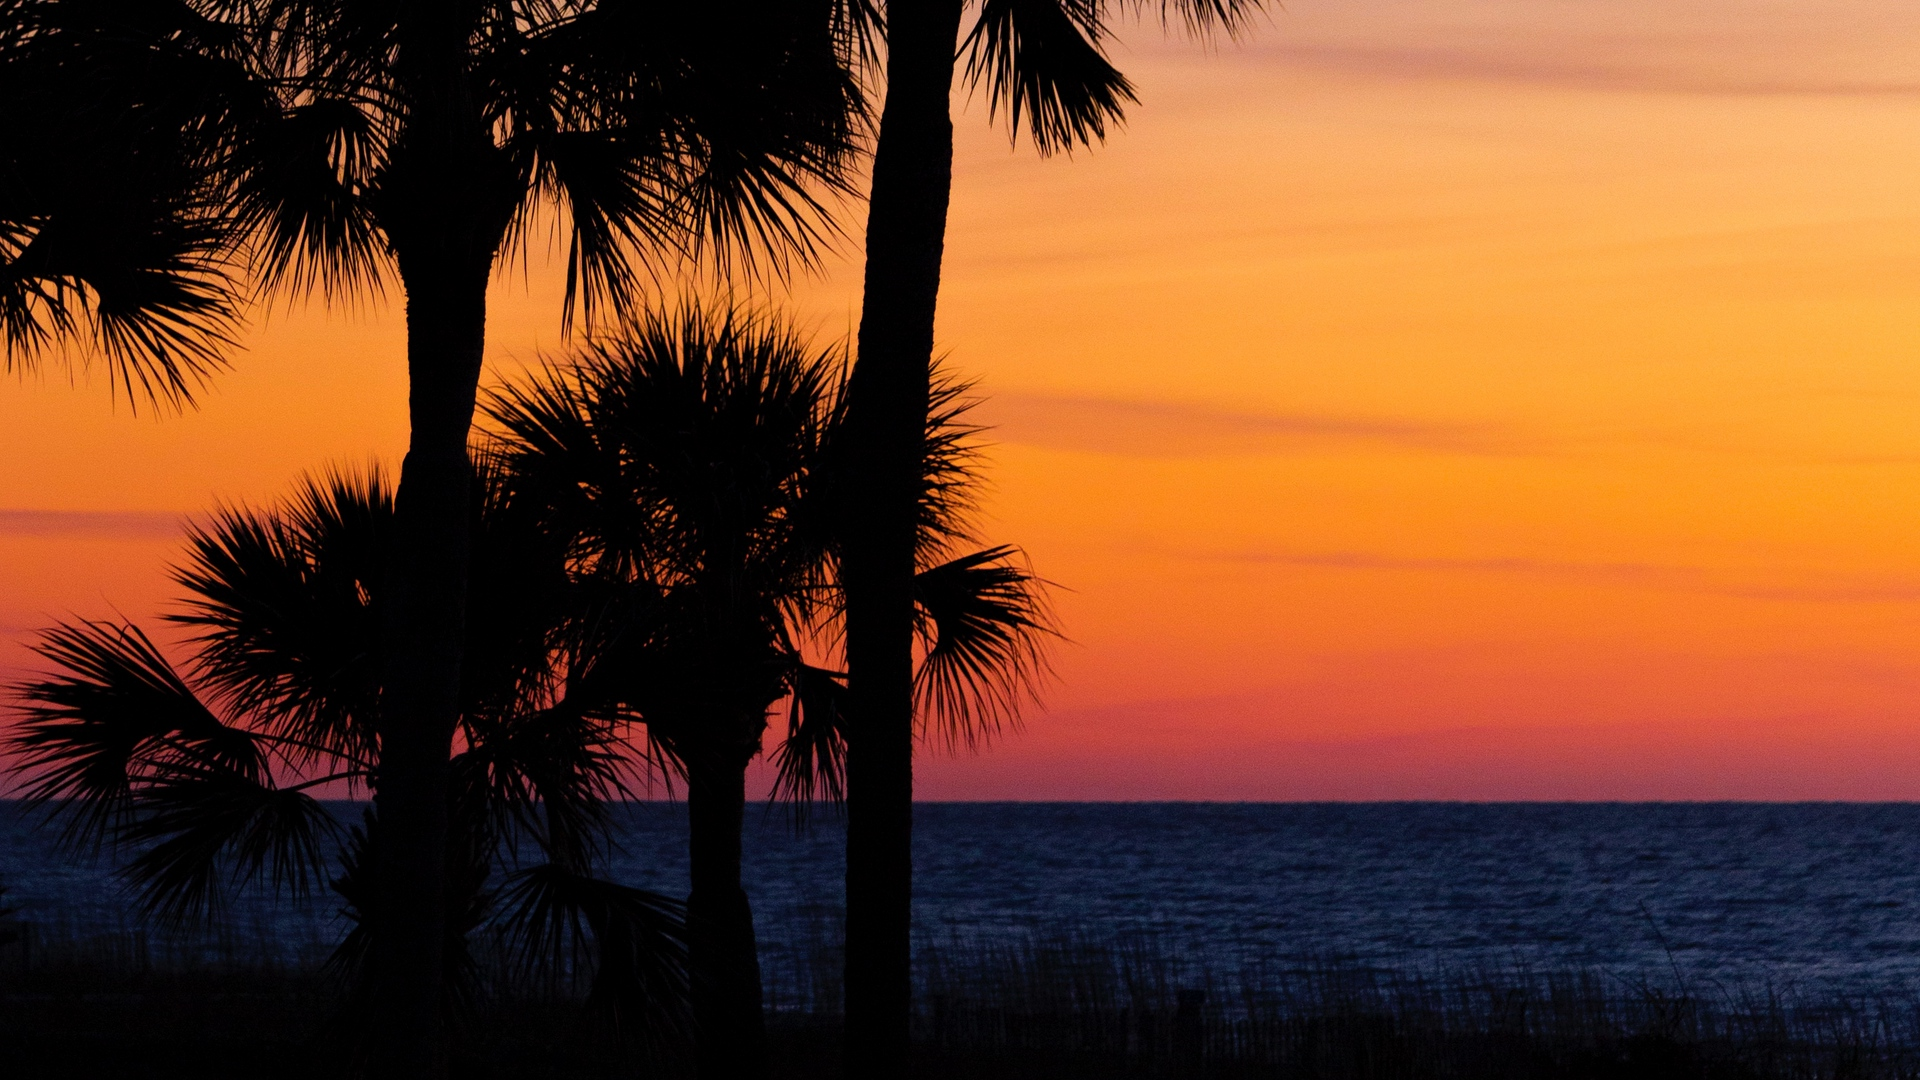 palm trees trees sunset